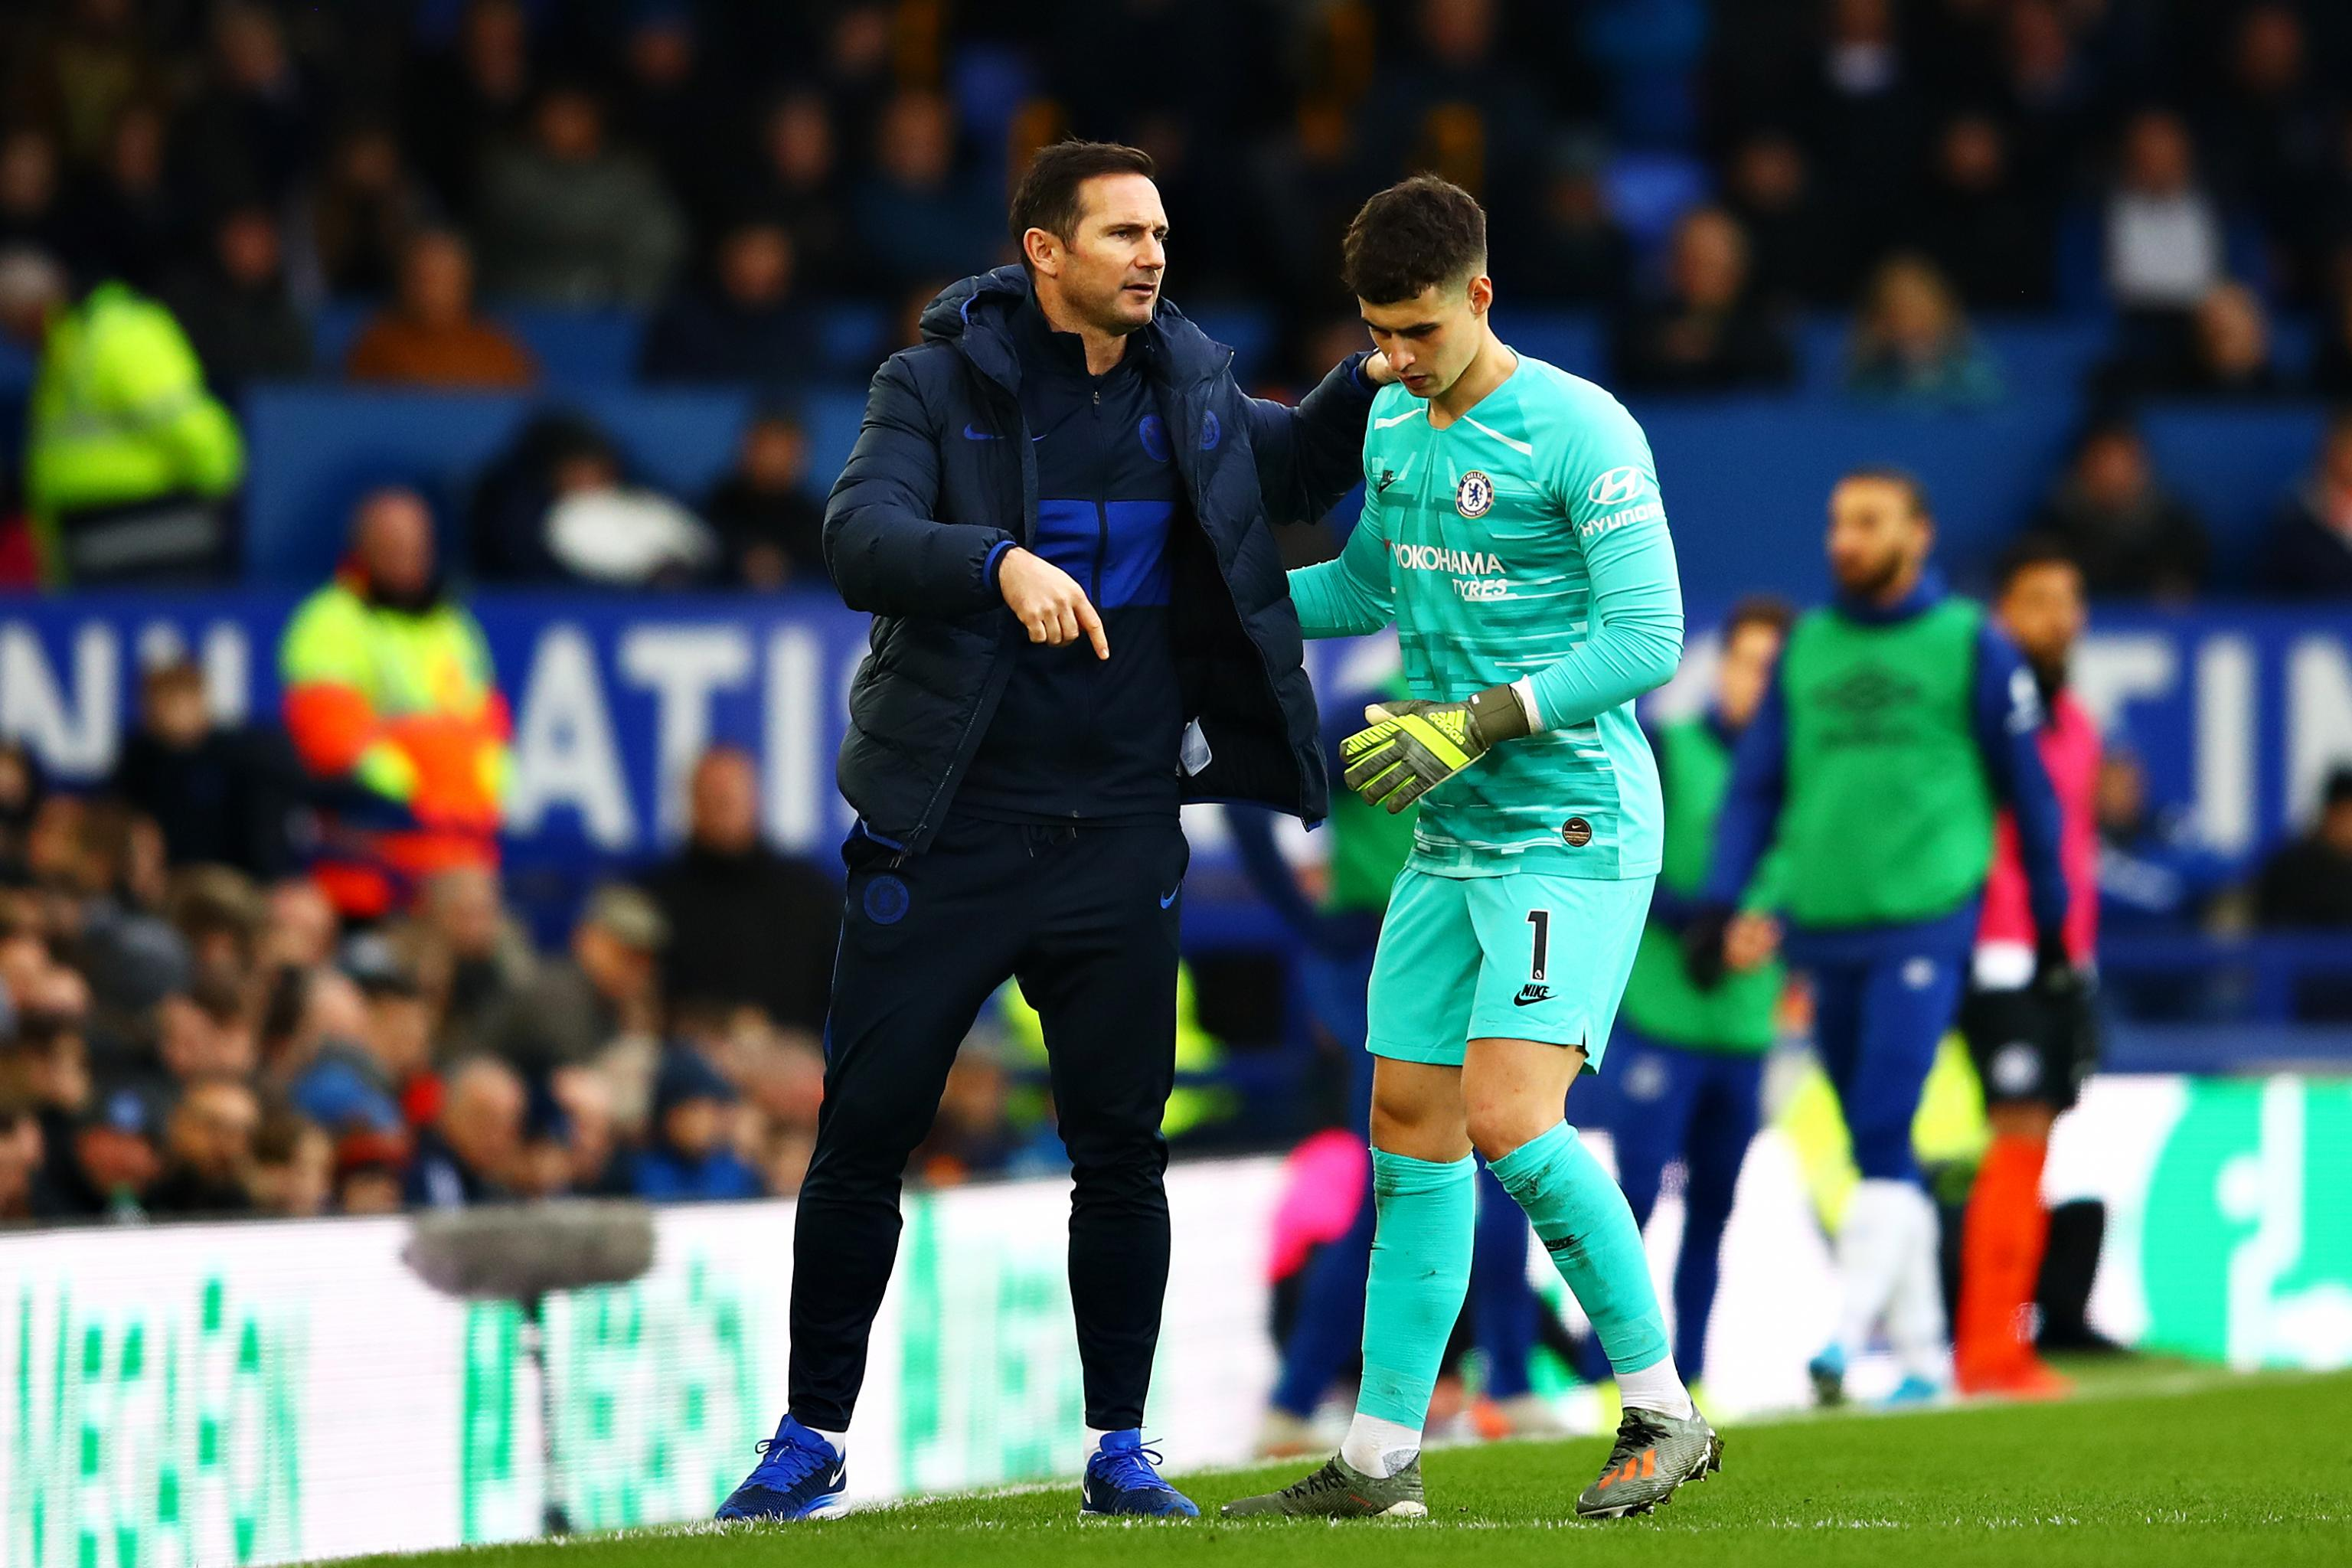 Chelsea Boss Frank Lampard on Decision to Drop Kepa: 'I Just ...